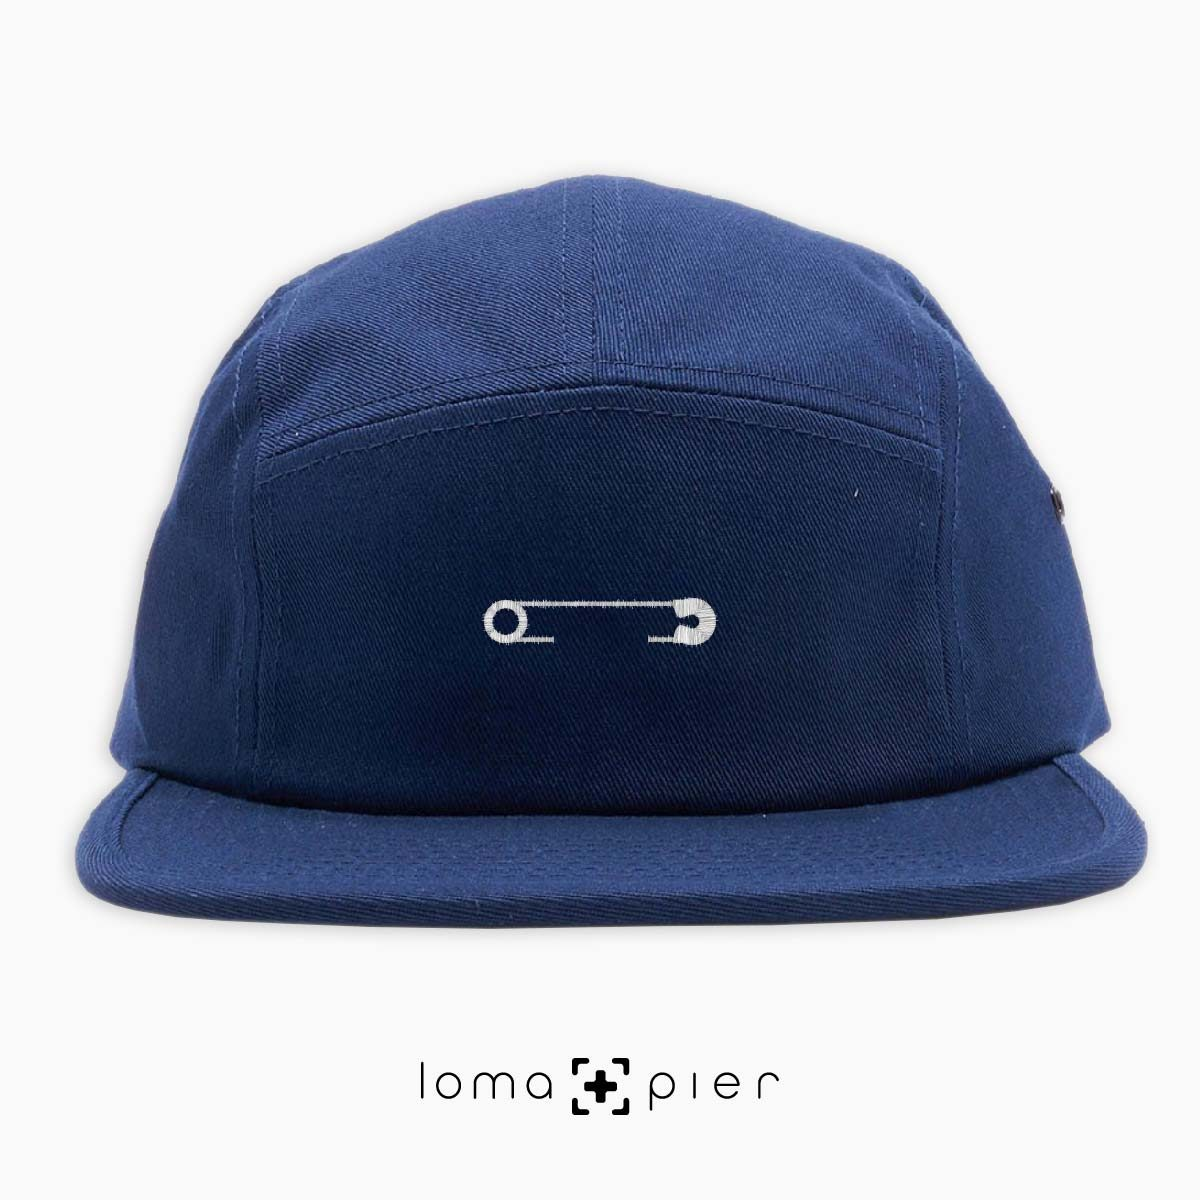 SAFETY PIN icon embroidered on a navy blue cotton 5-panel hat with white thread by loma+pier hat store